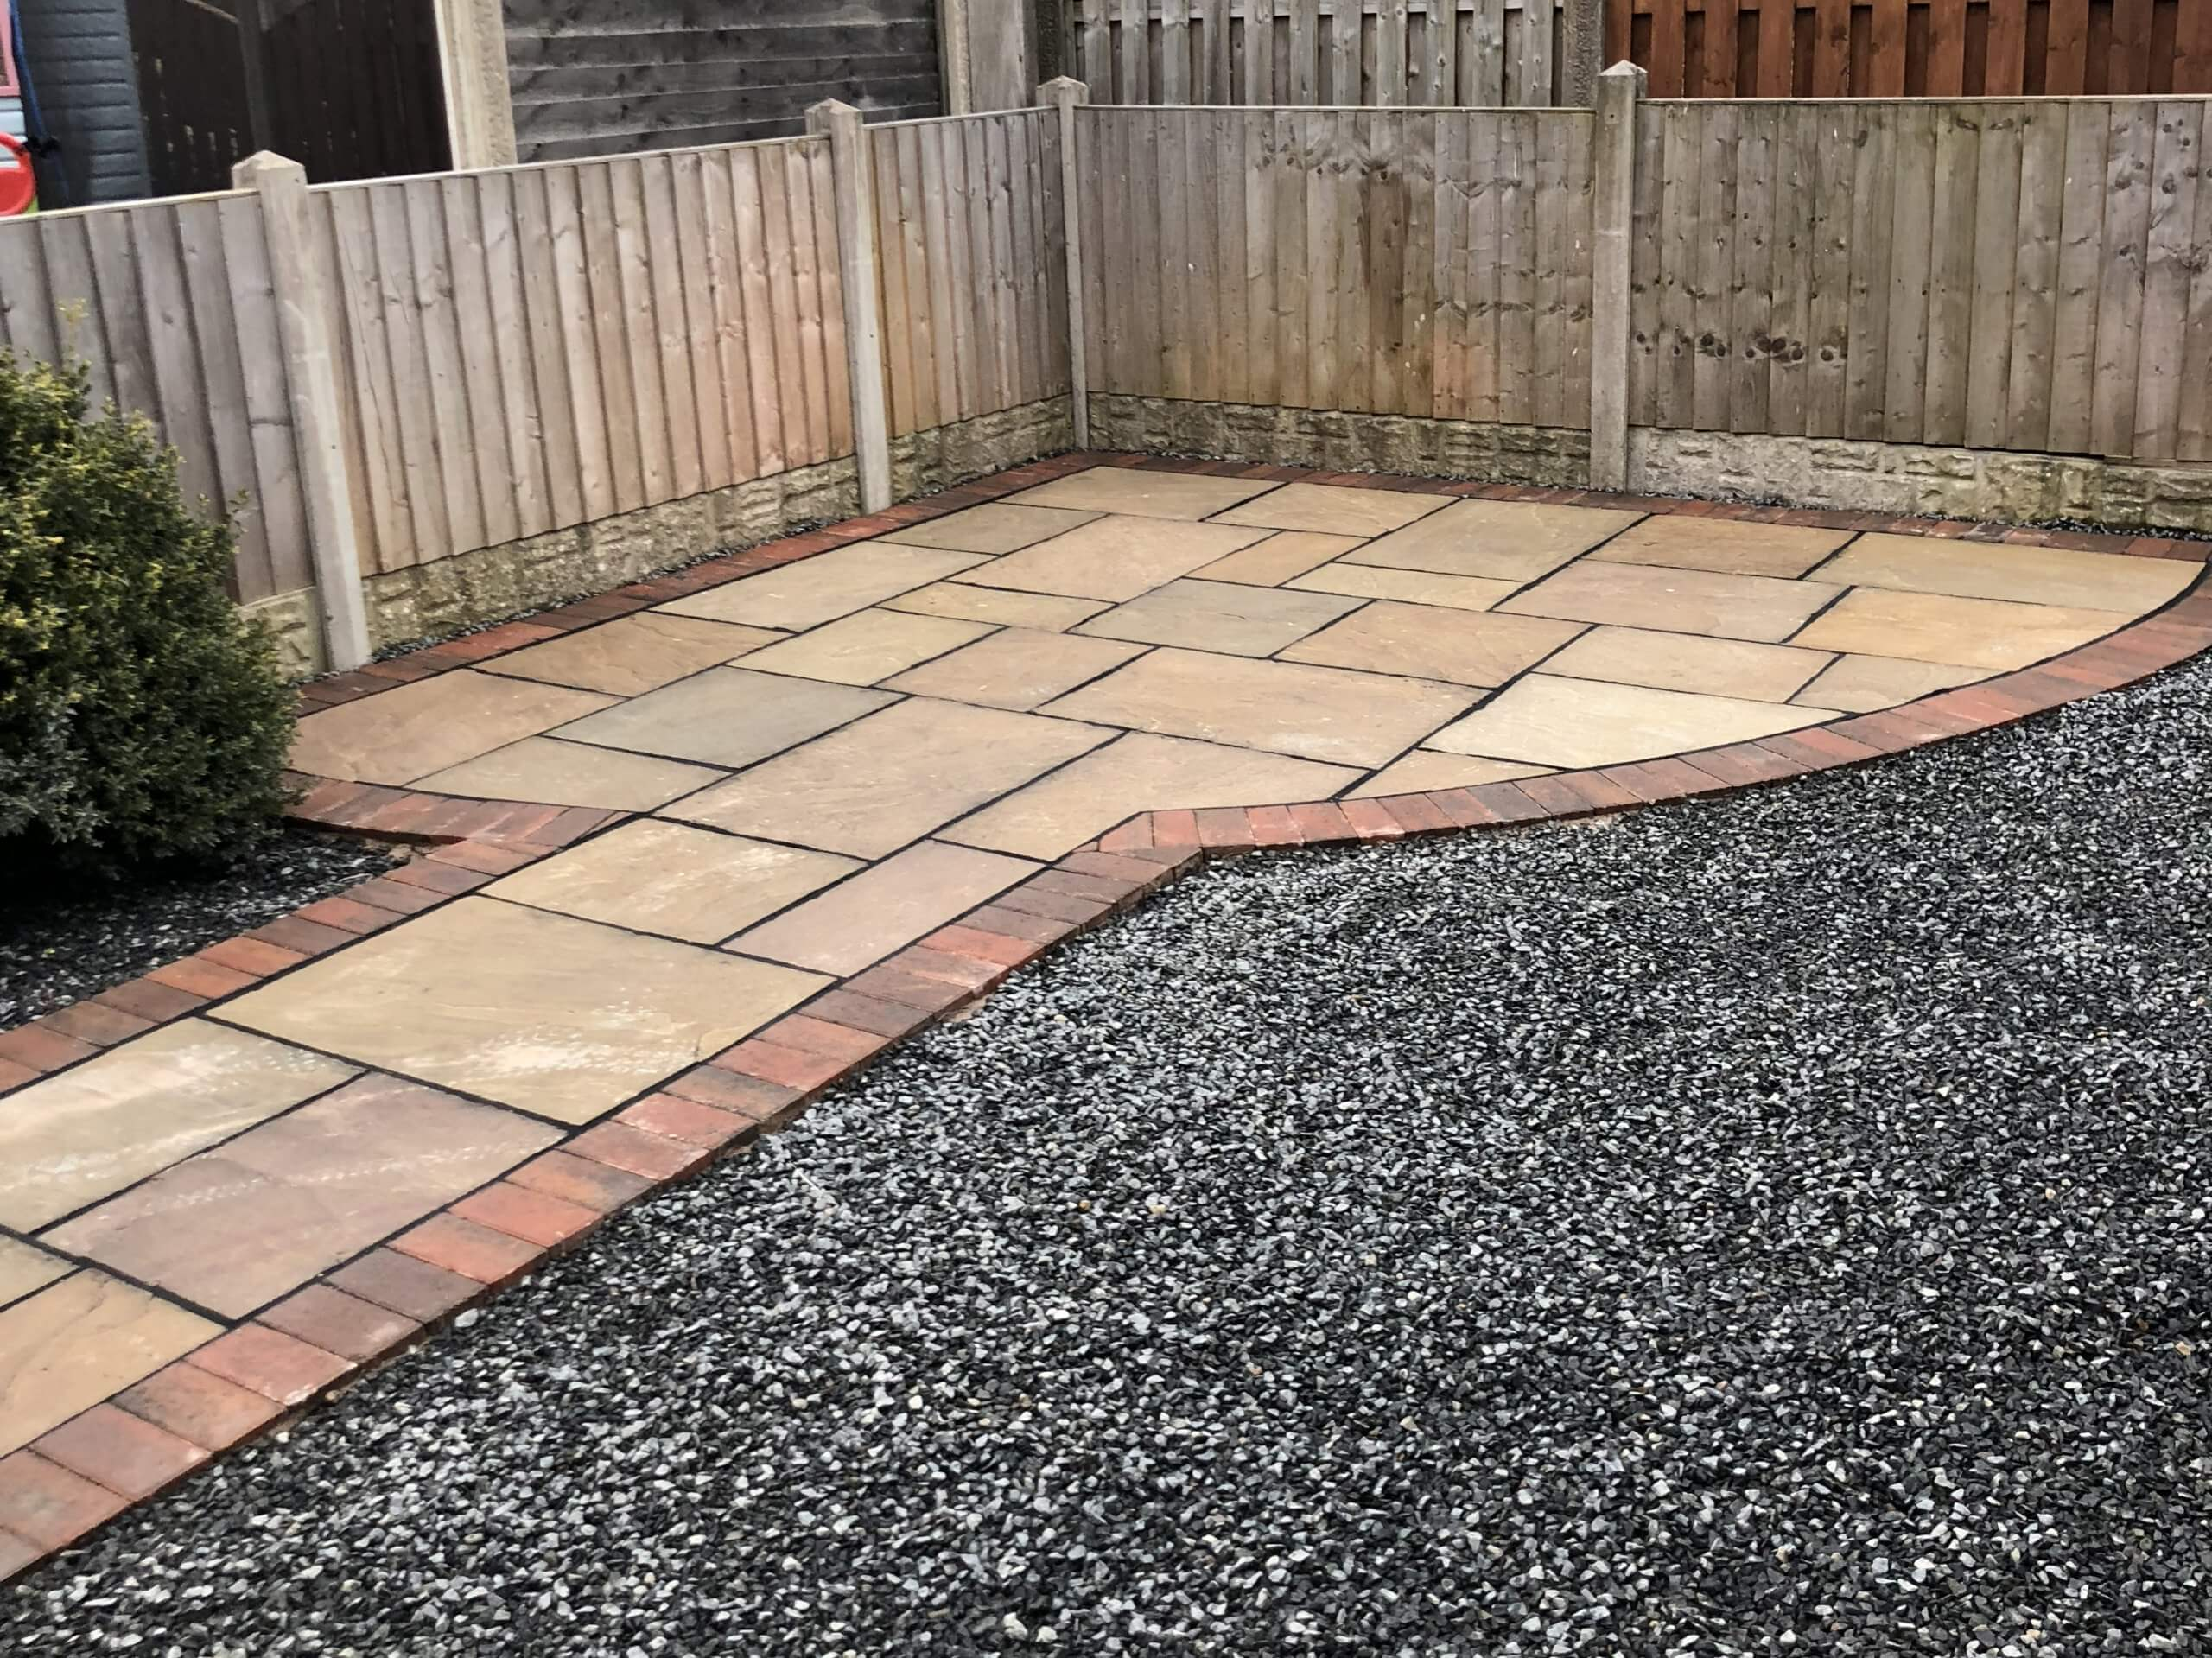 Indian Sandstone back garden with Tarmac Driveway in Lancaster, Lancashire